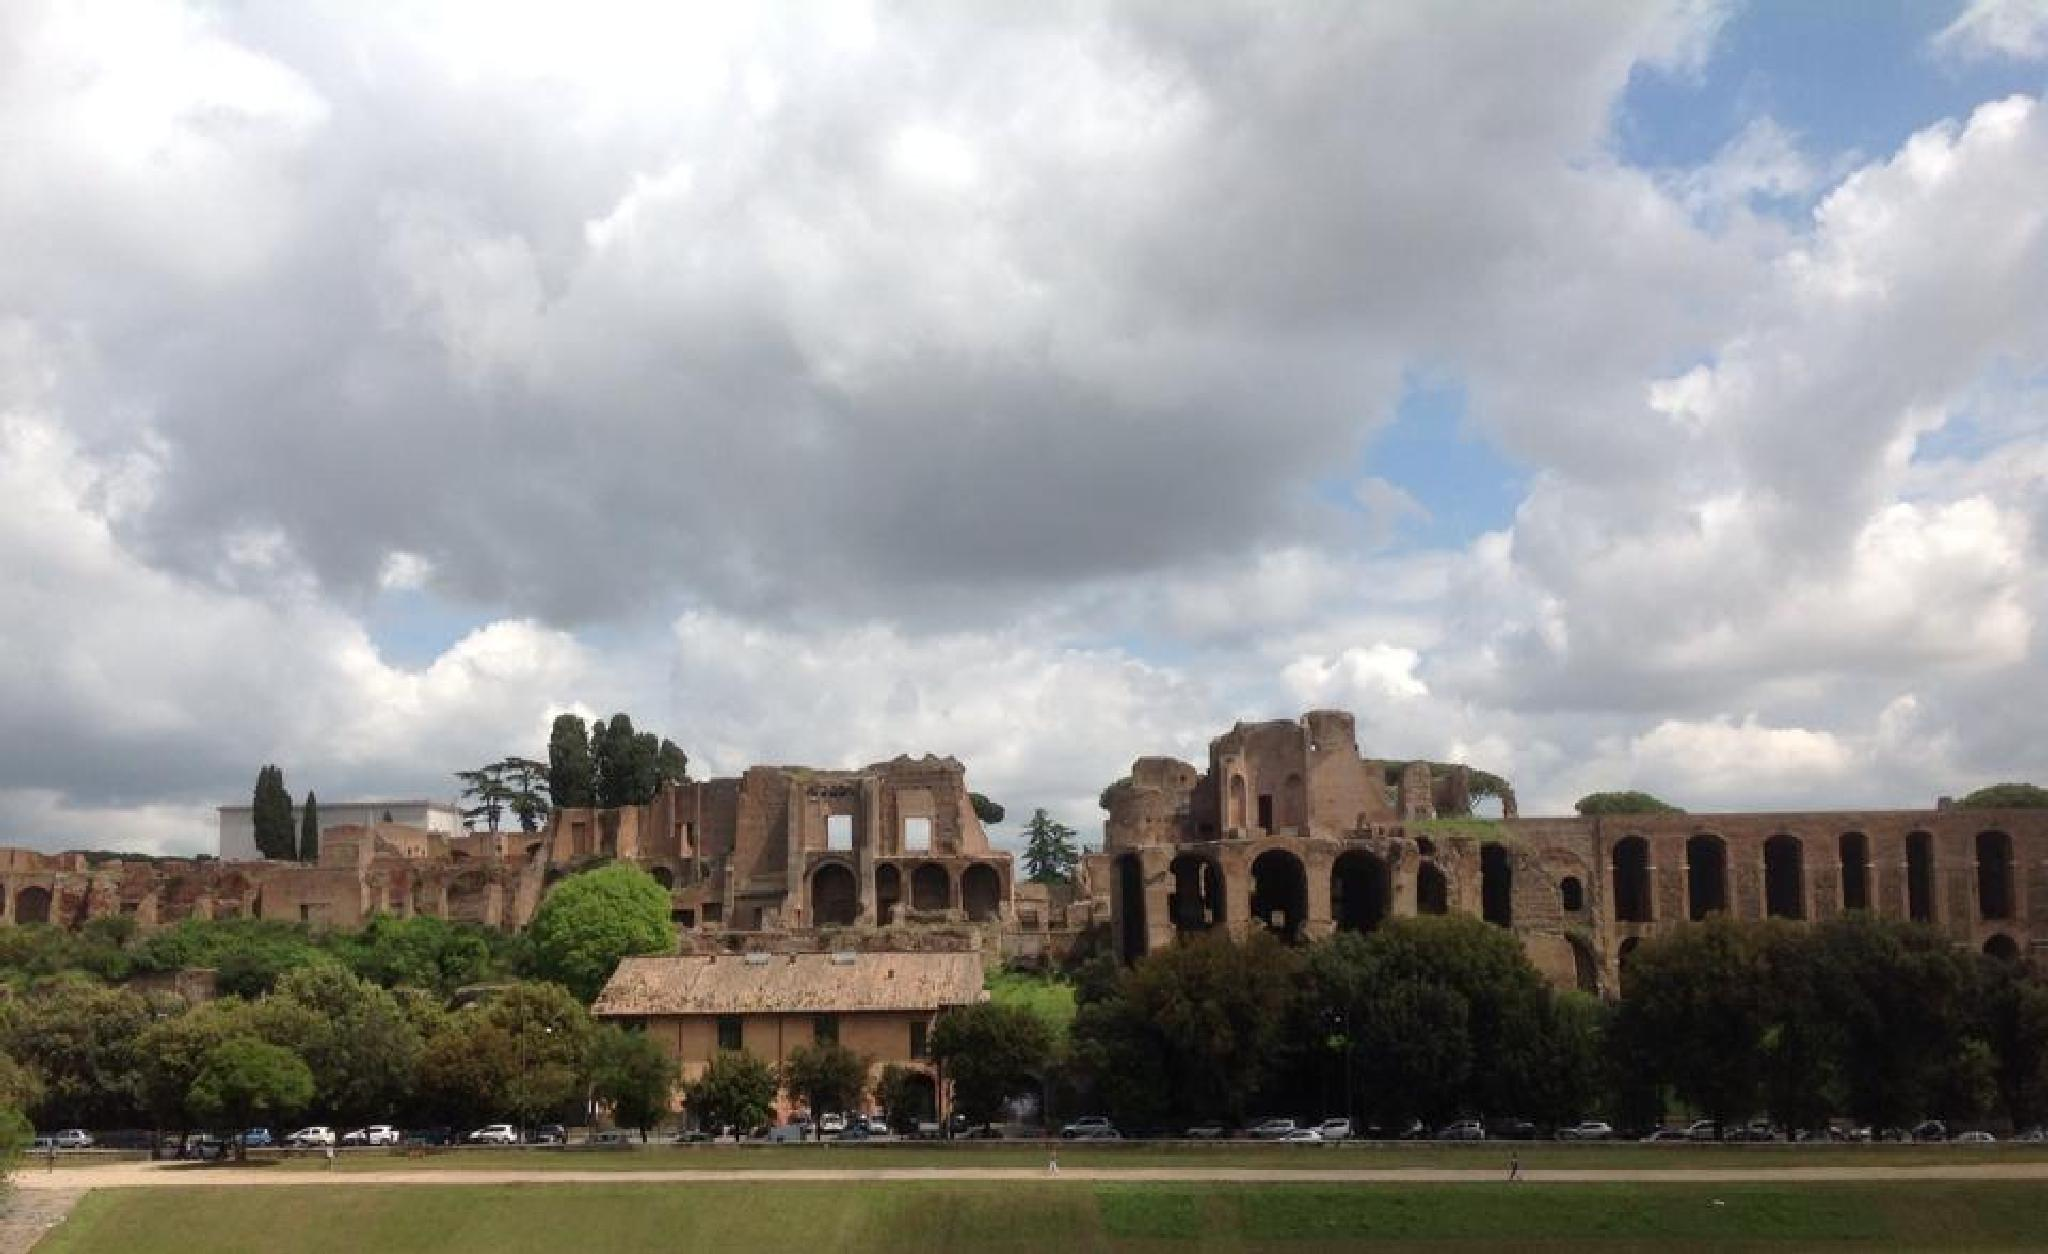 Where the Emperors lived, Rome. by grossiroma